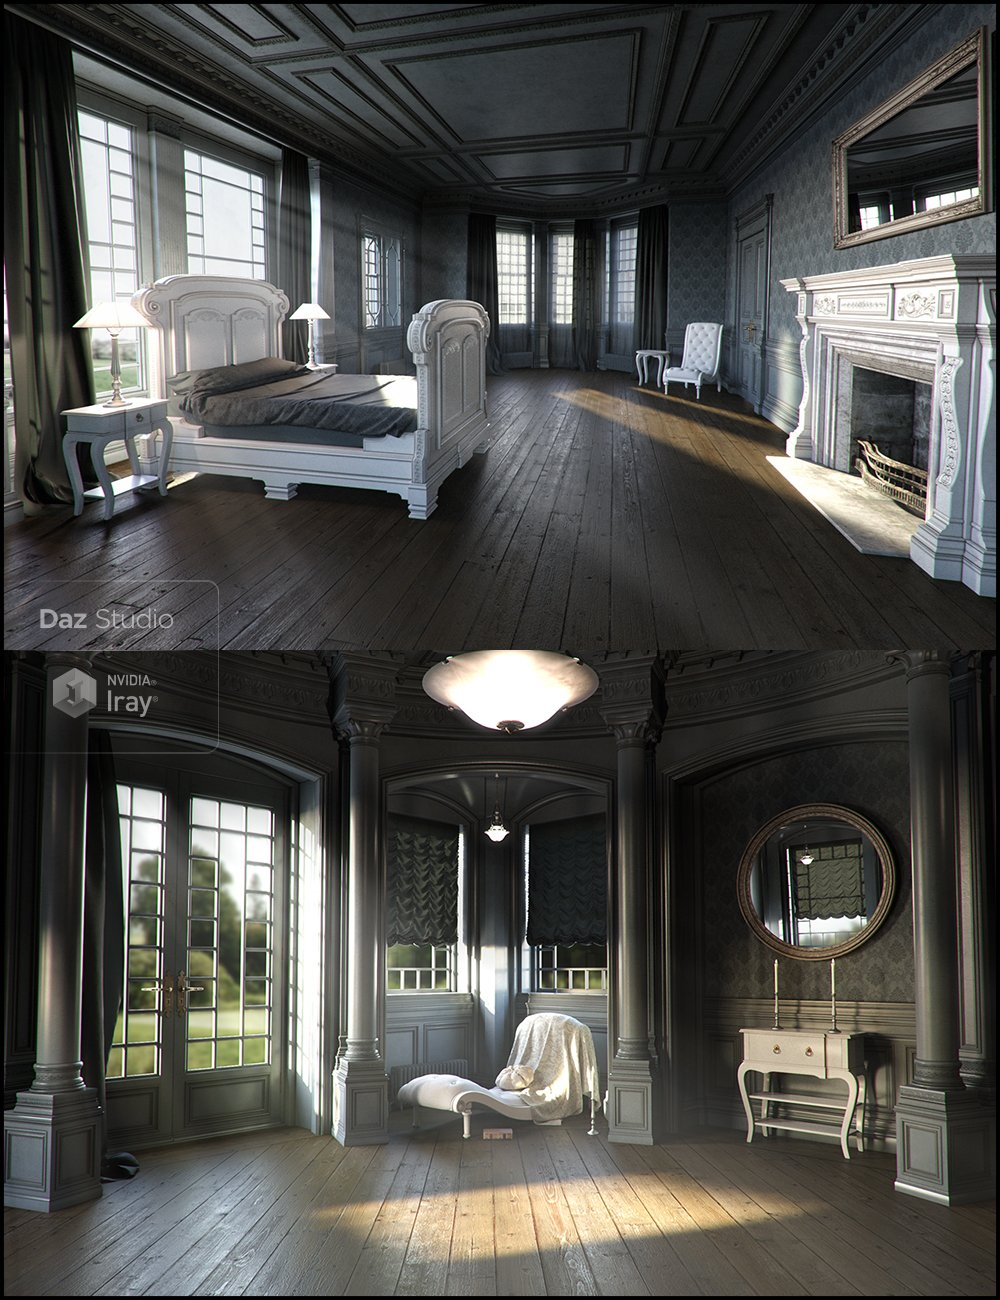 Neoclassical for Rural Chateau I - III by: Jack Tomalin, 3D Models by Daz 3D